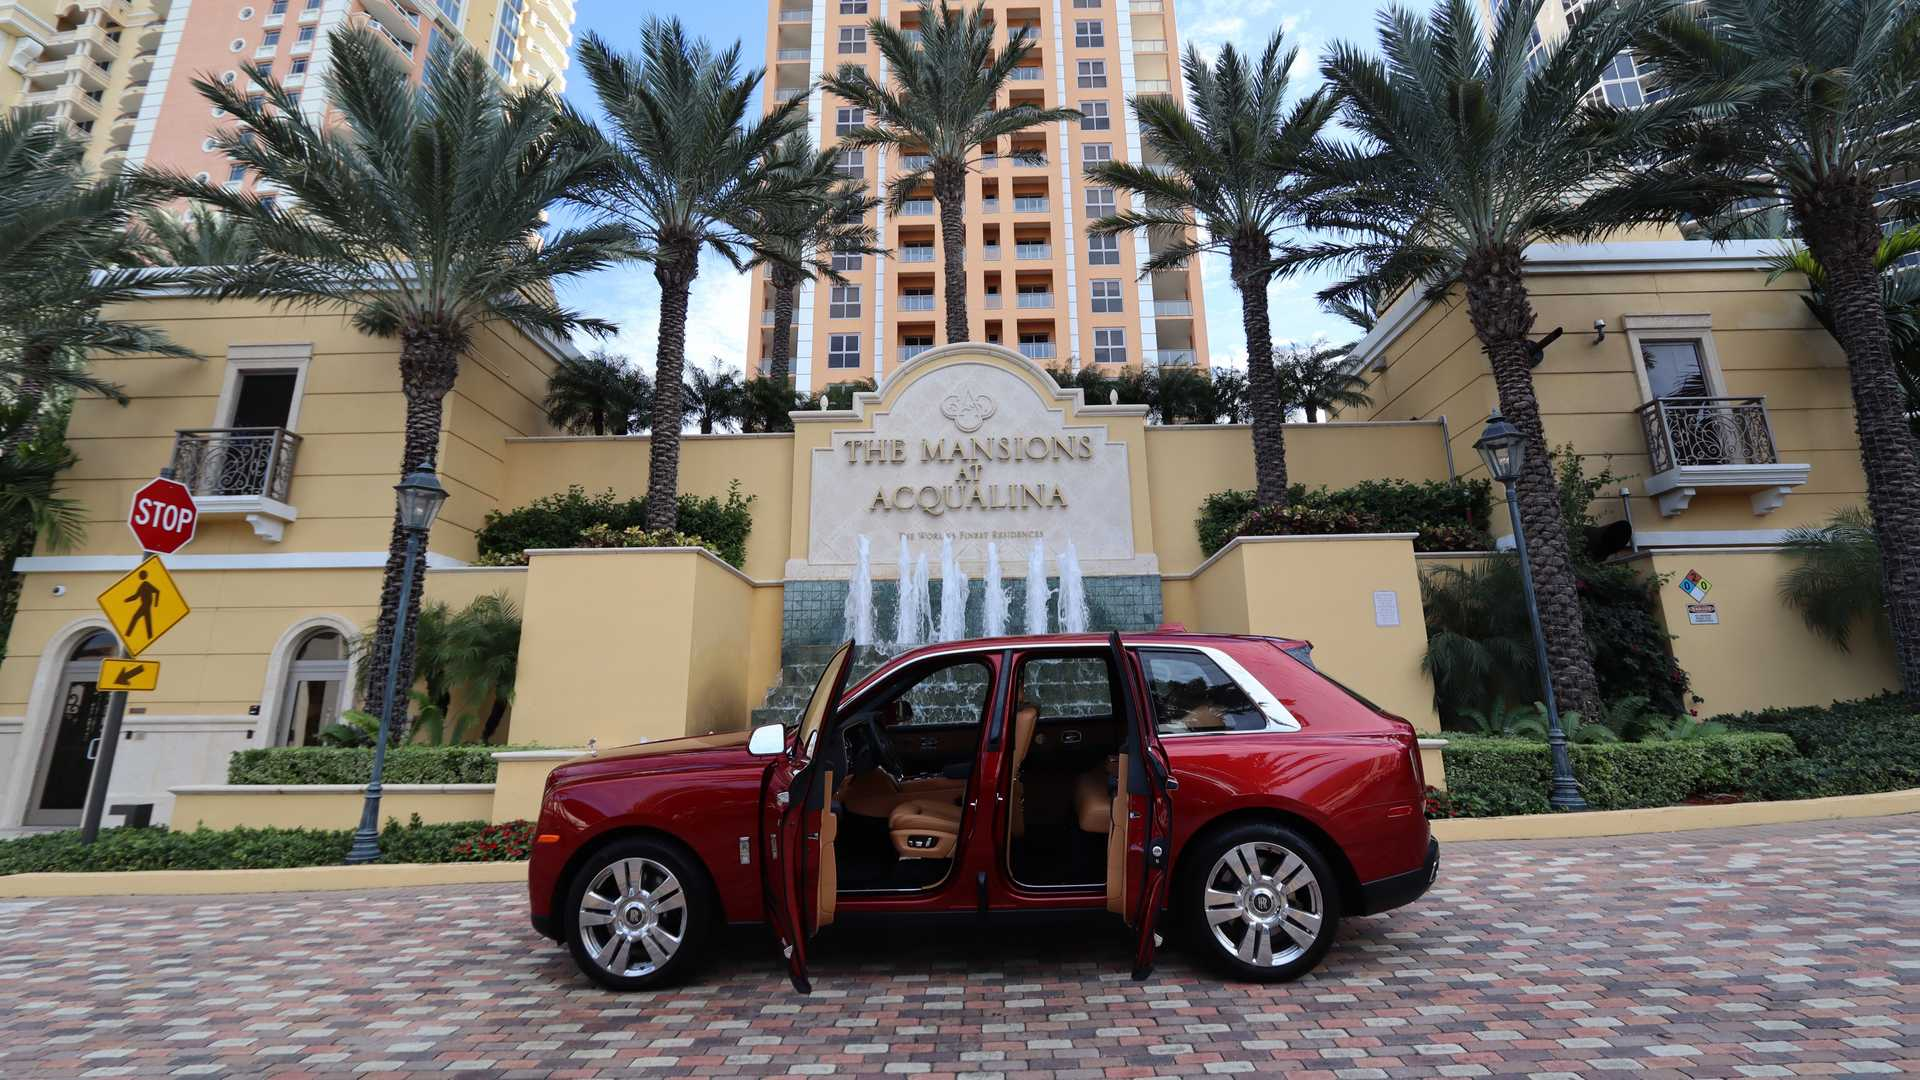 rolls-royce-at-mansions-at-acqualina (2)